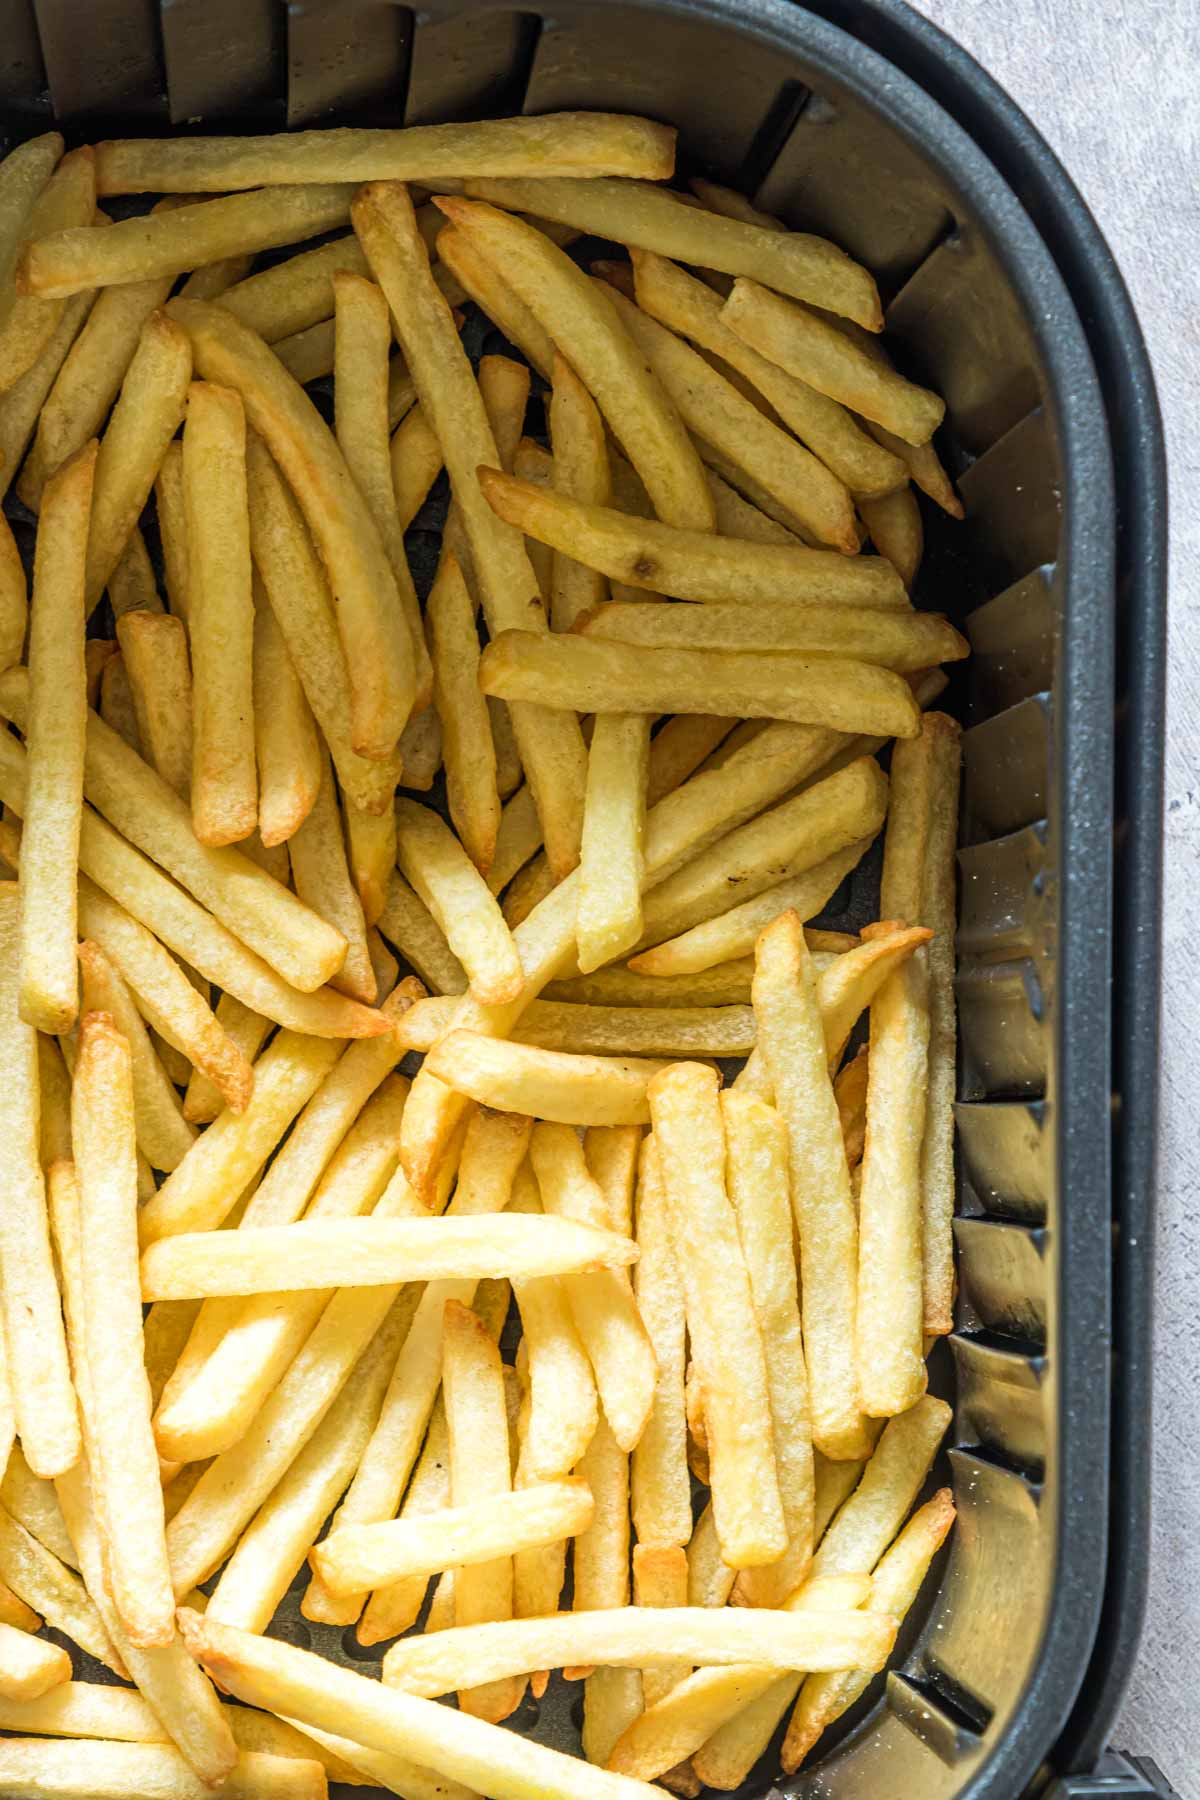 extreme close up of reheating fries in air fryer